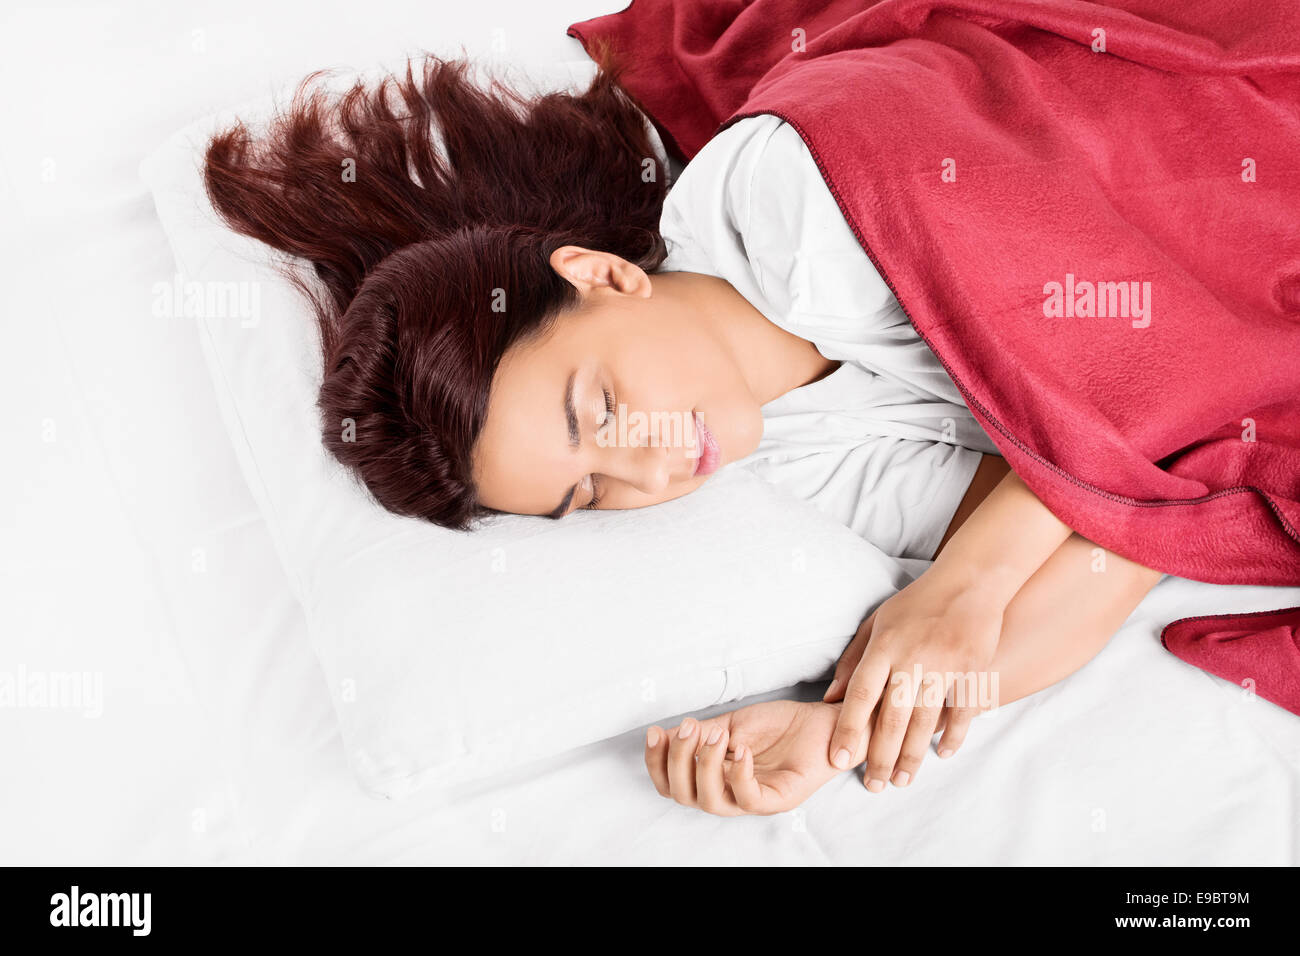 Beautiful girl sleeping, making an impression she's dreaming something nice - Stock Image